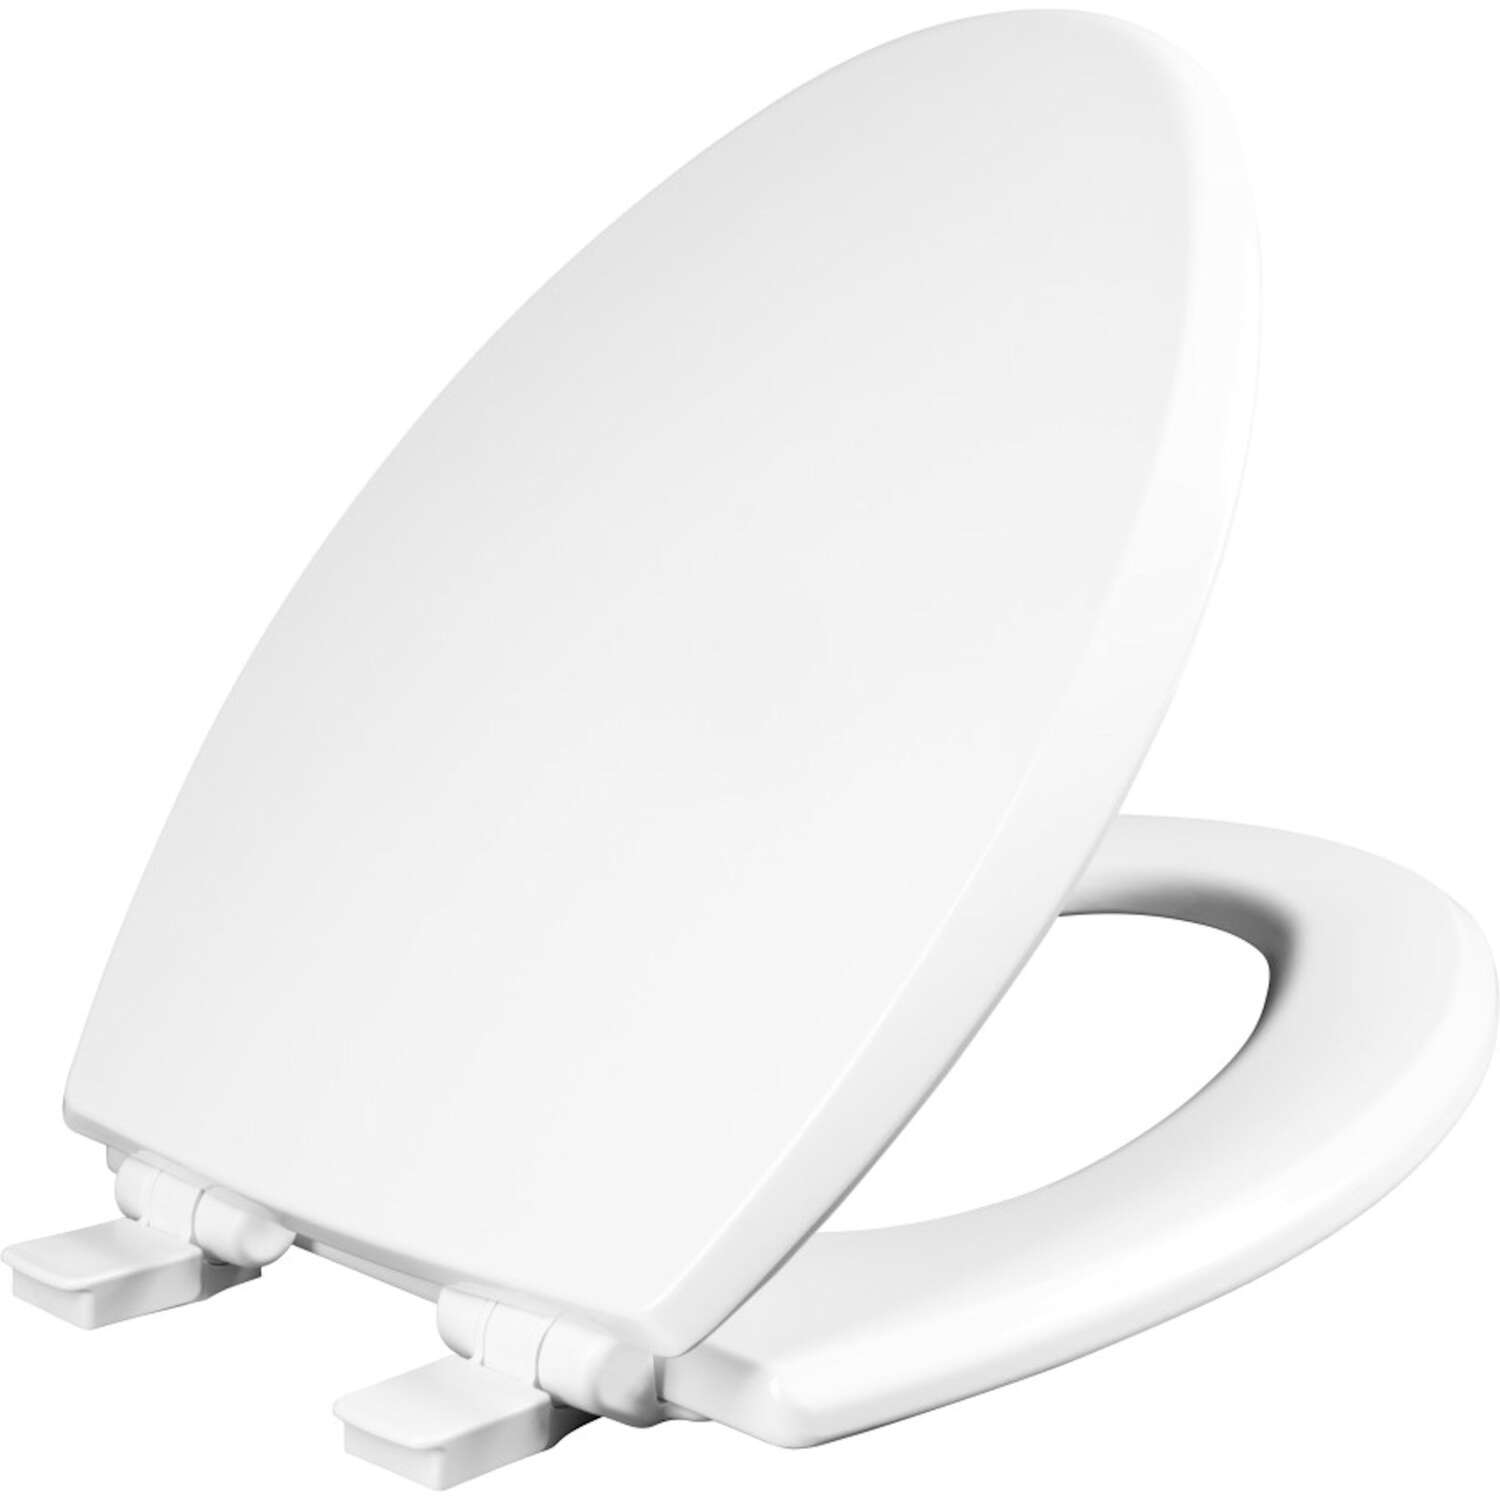 Mayfair  Kendall  Slow Close Elongated  White  Enameled Wood  Toilet Seat